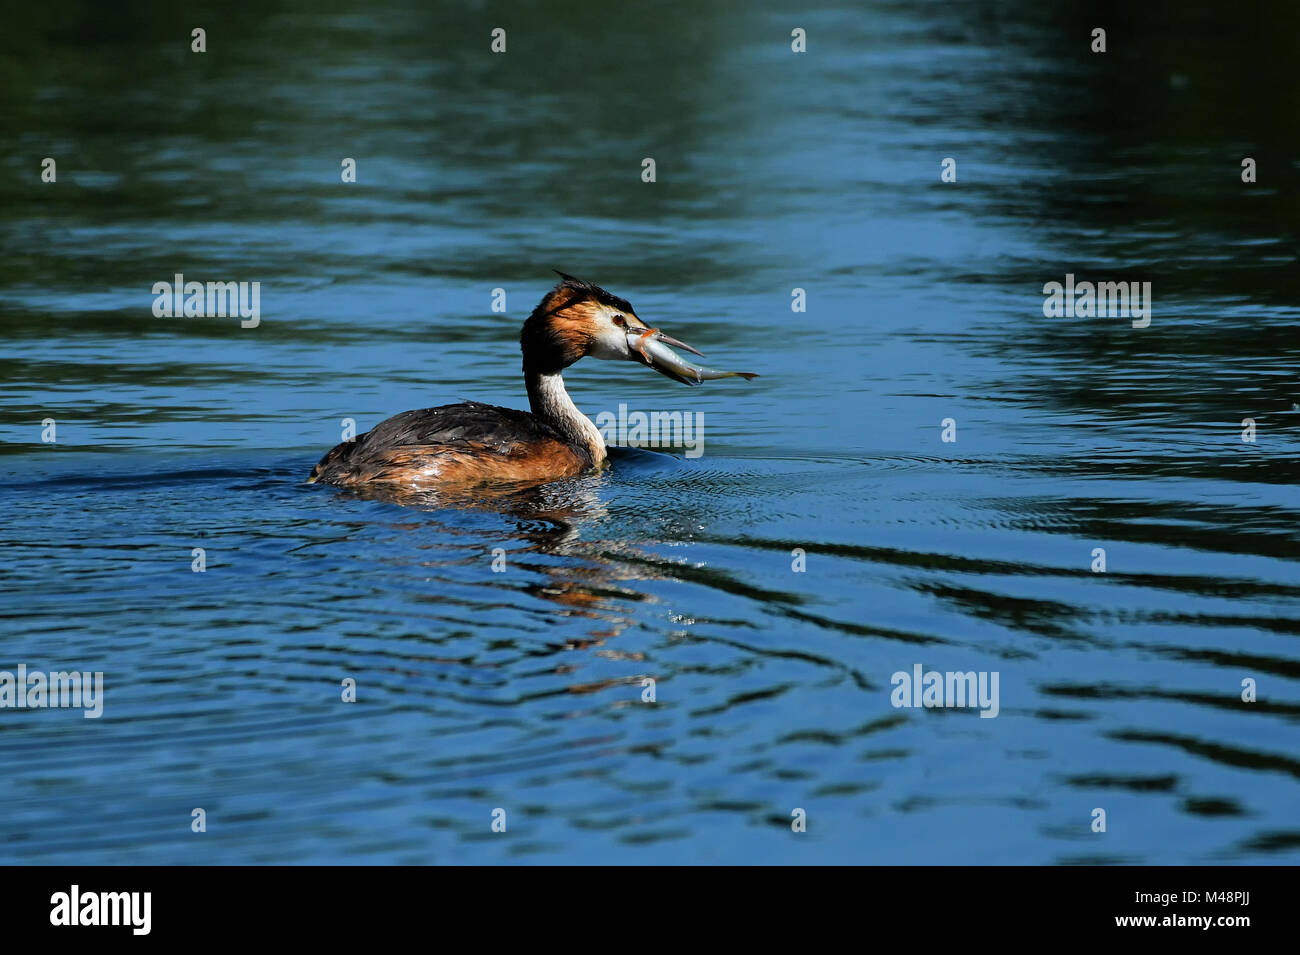 Great crested grebe with a fish - Stock Image